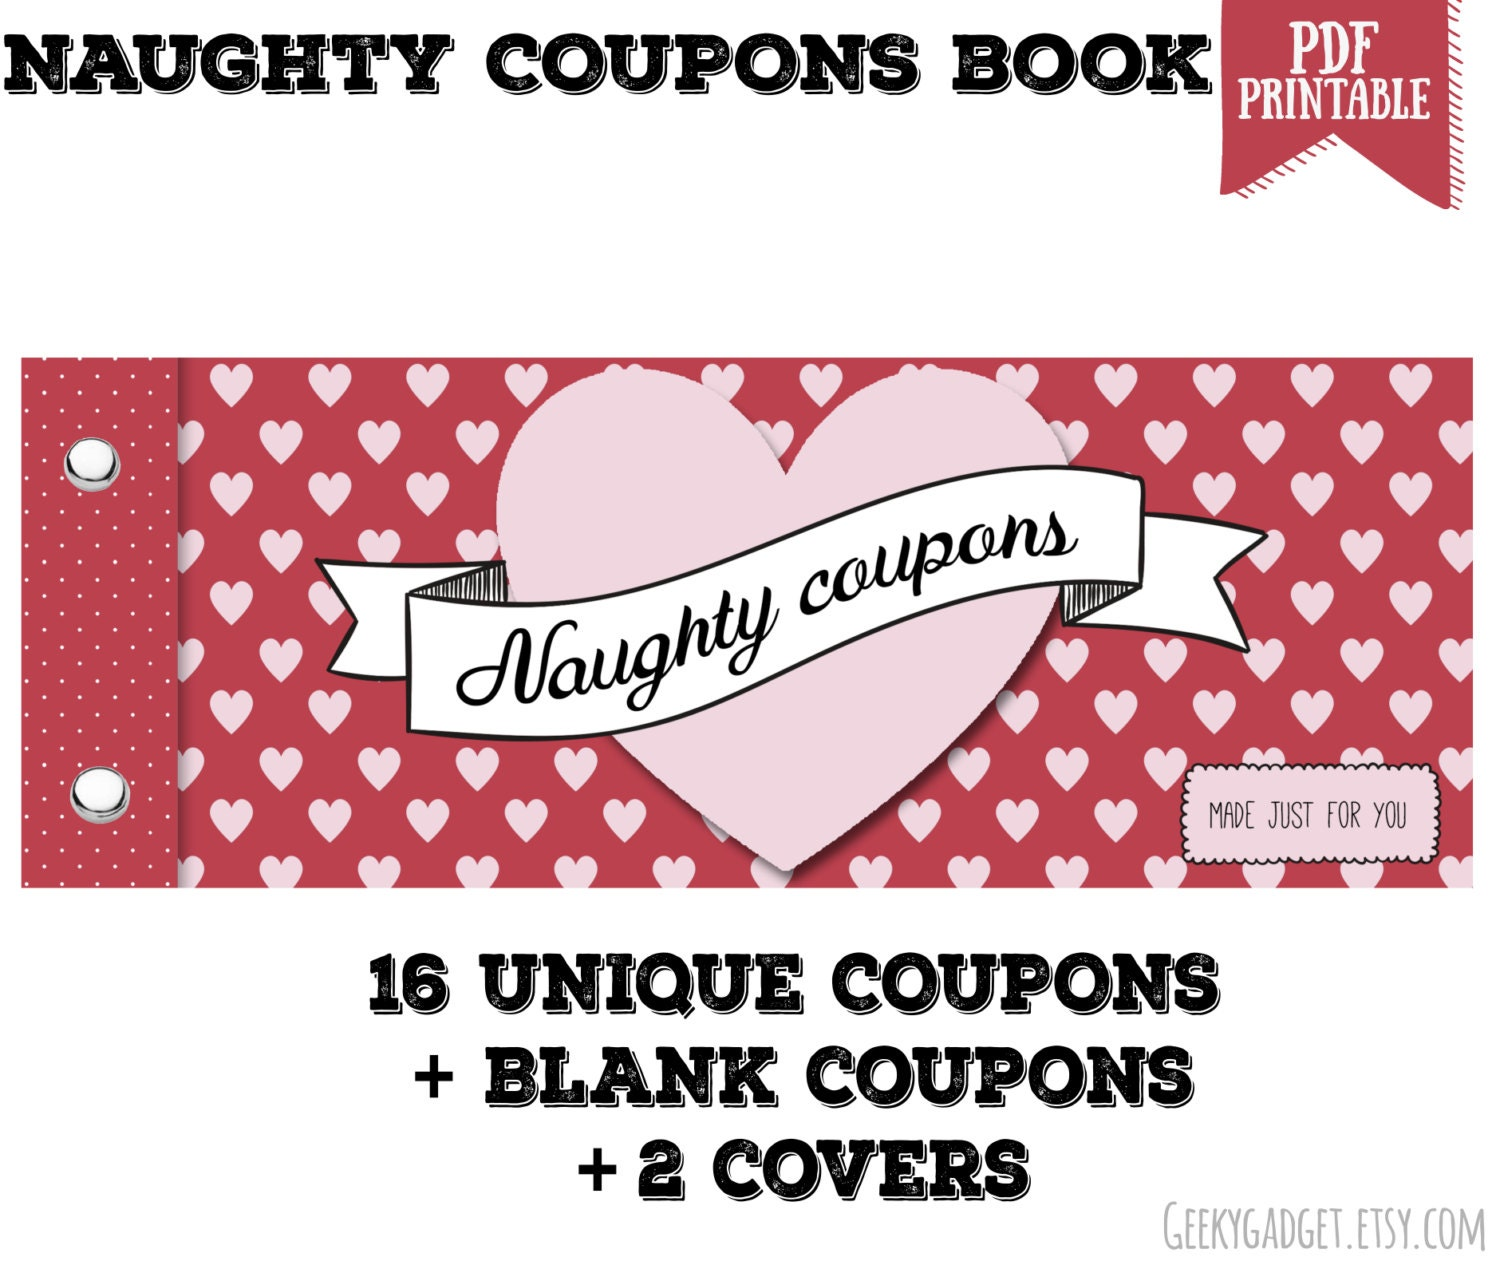 naughty coupon book 16 printable coupons for boyfriend 🔎zoom